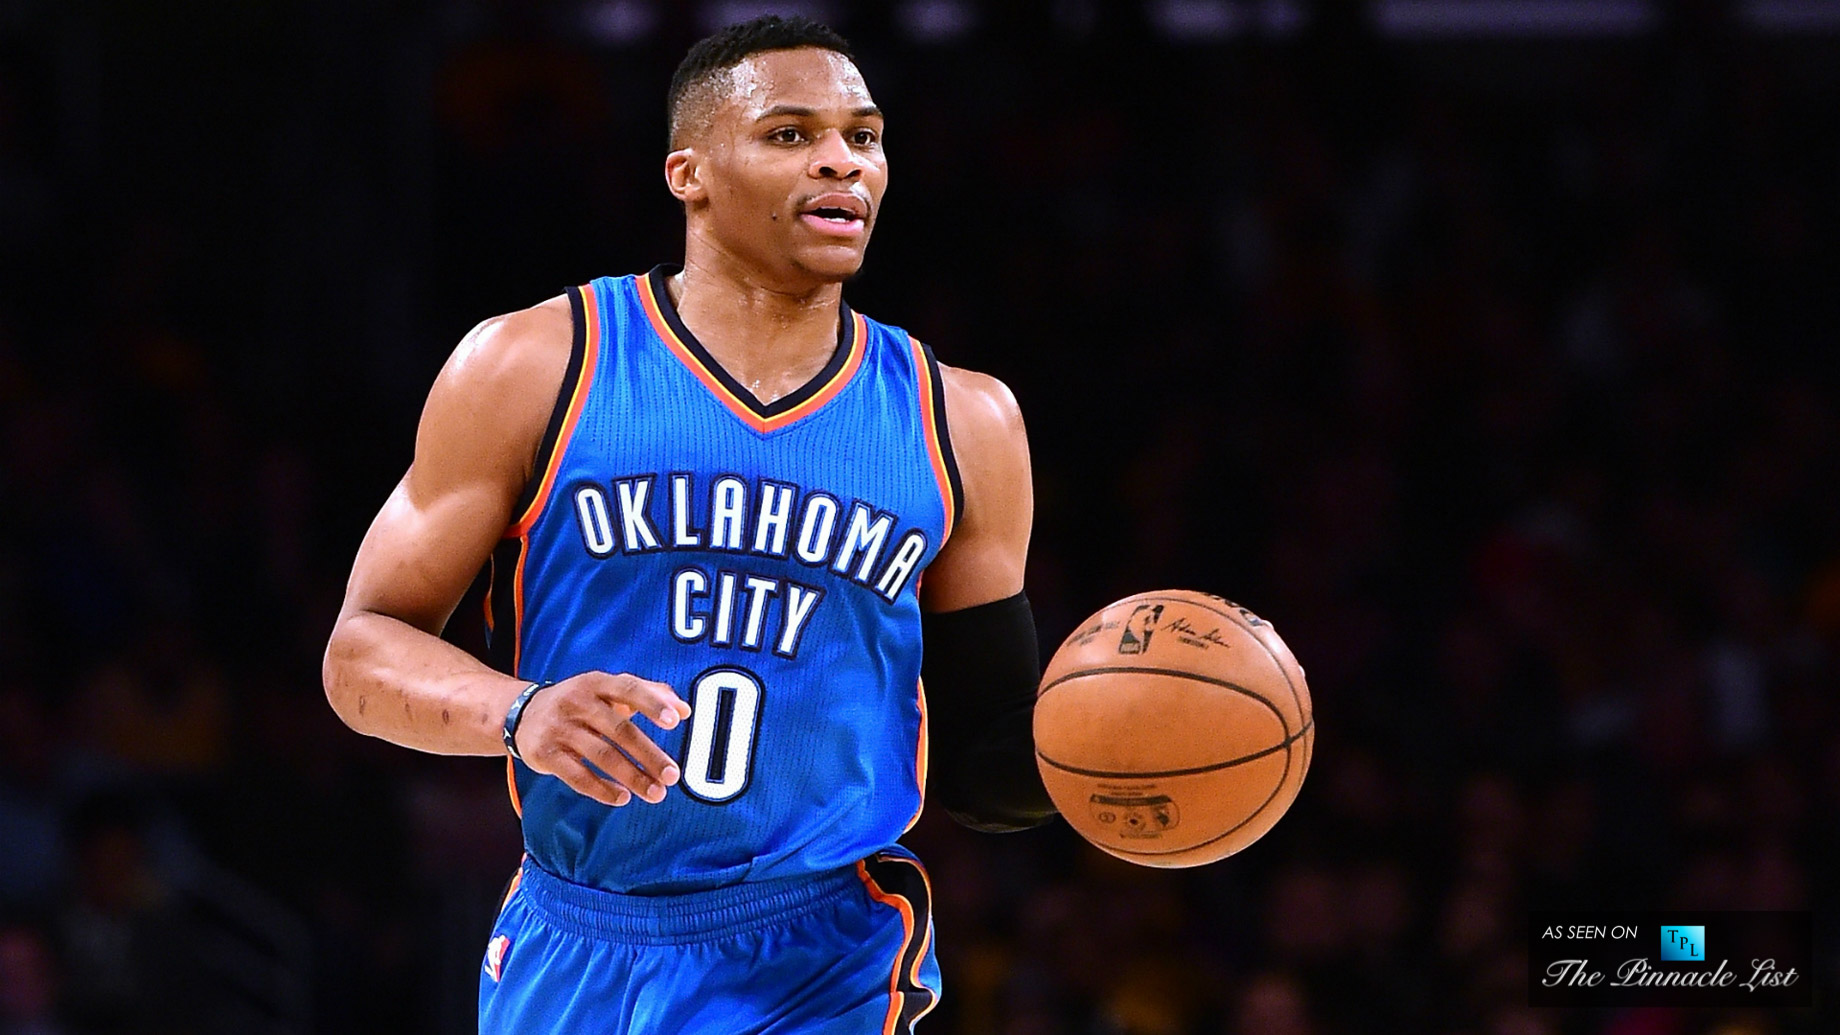 Russell Westbrook - The Luxury Lifestyle of an NBA Star